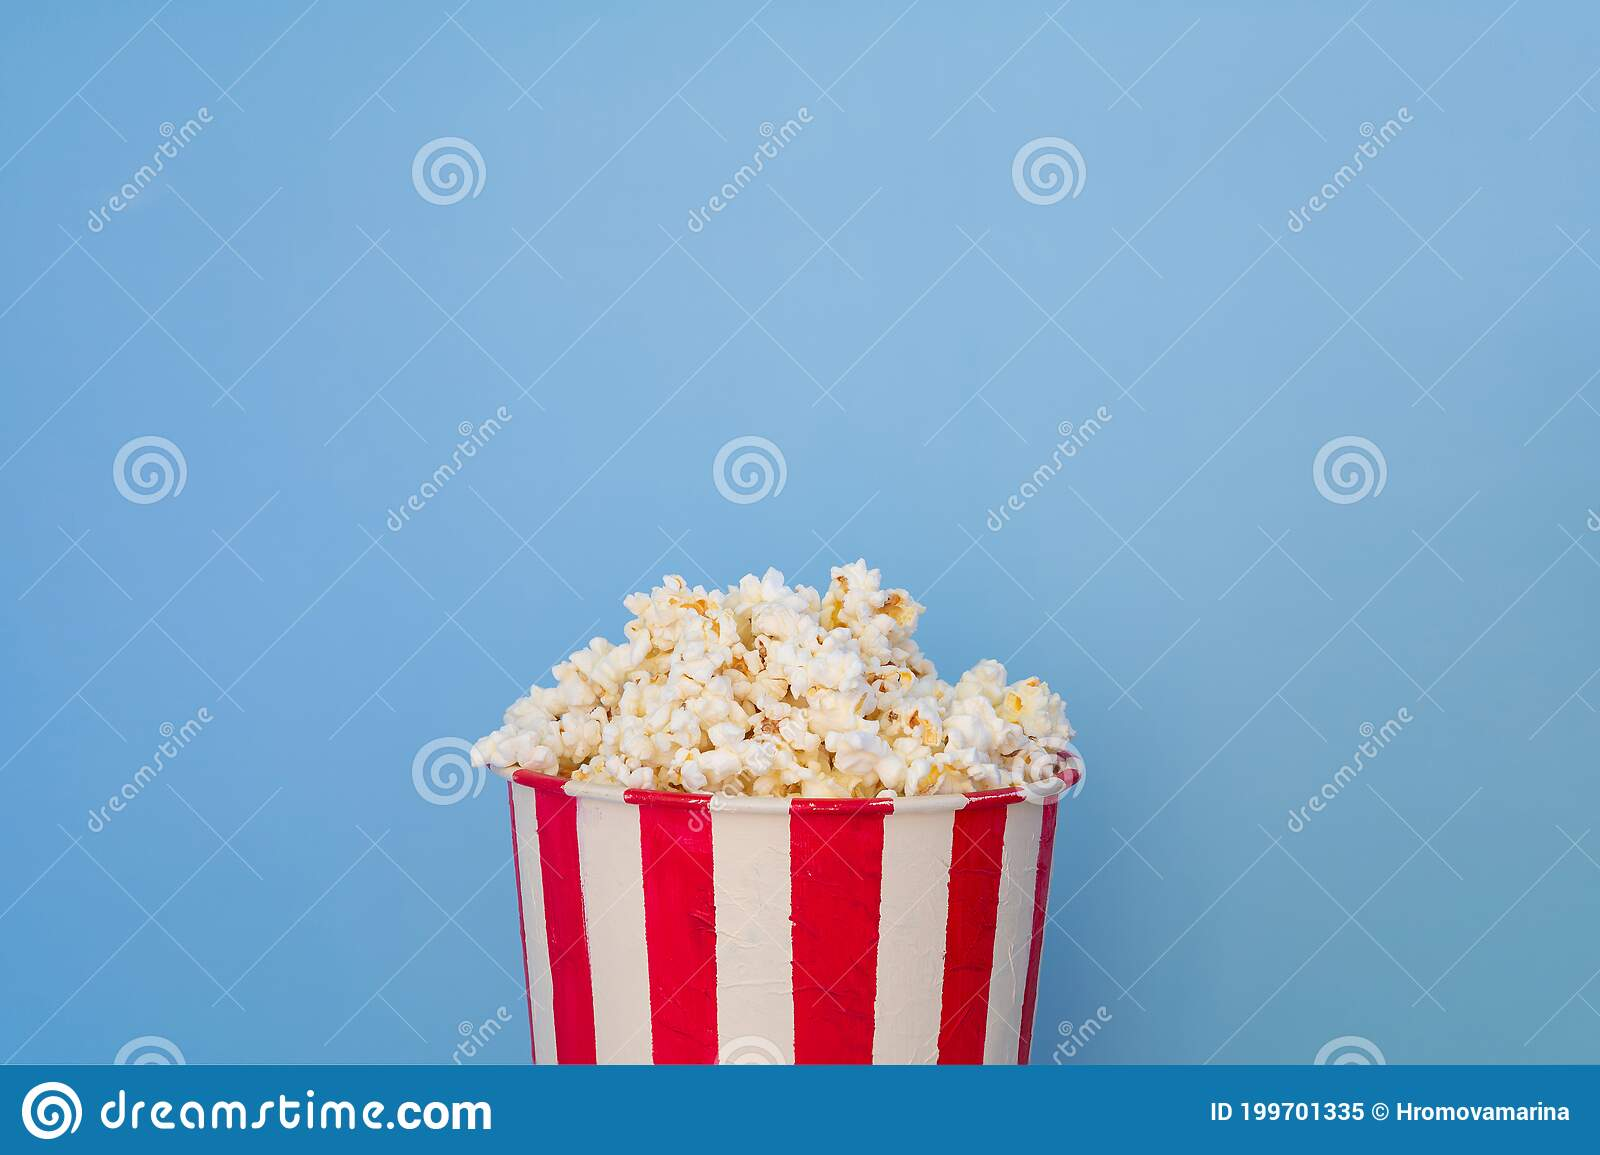 A Bucket Full Of Popcorn On A Blue Background Stock Image Image Of Delicious Closeup 199701335